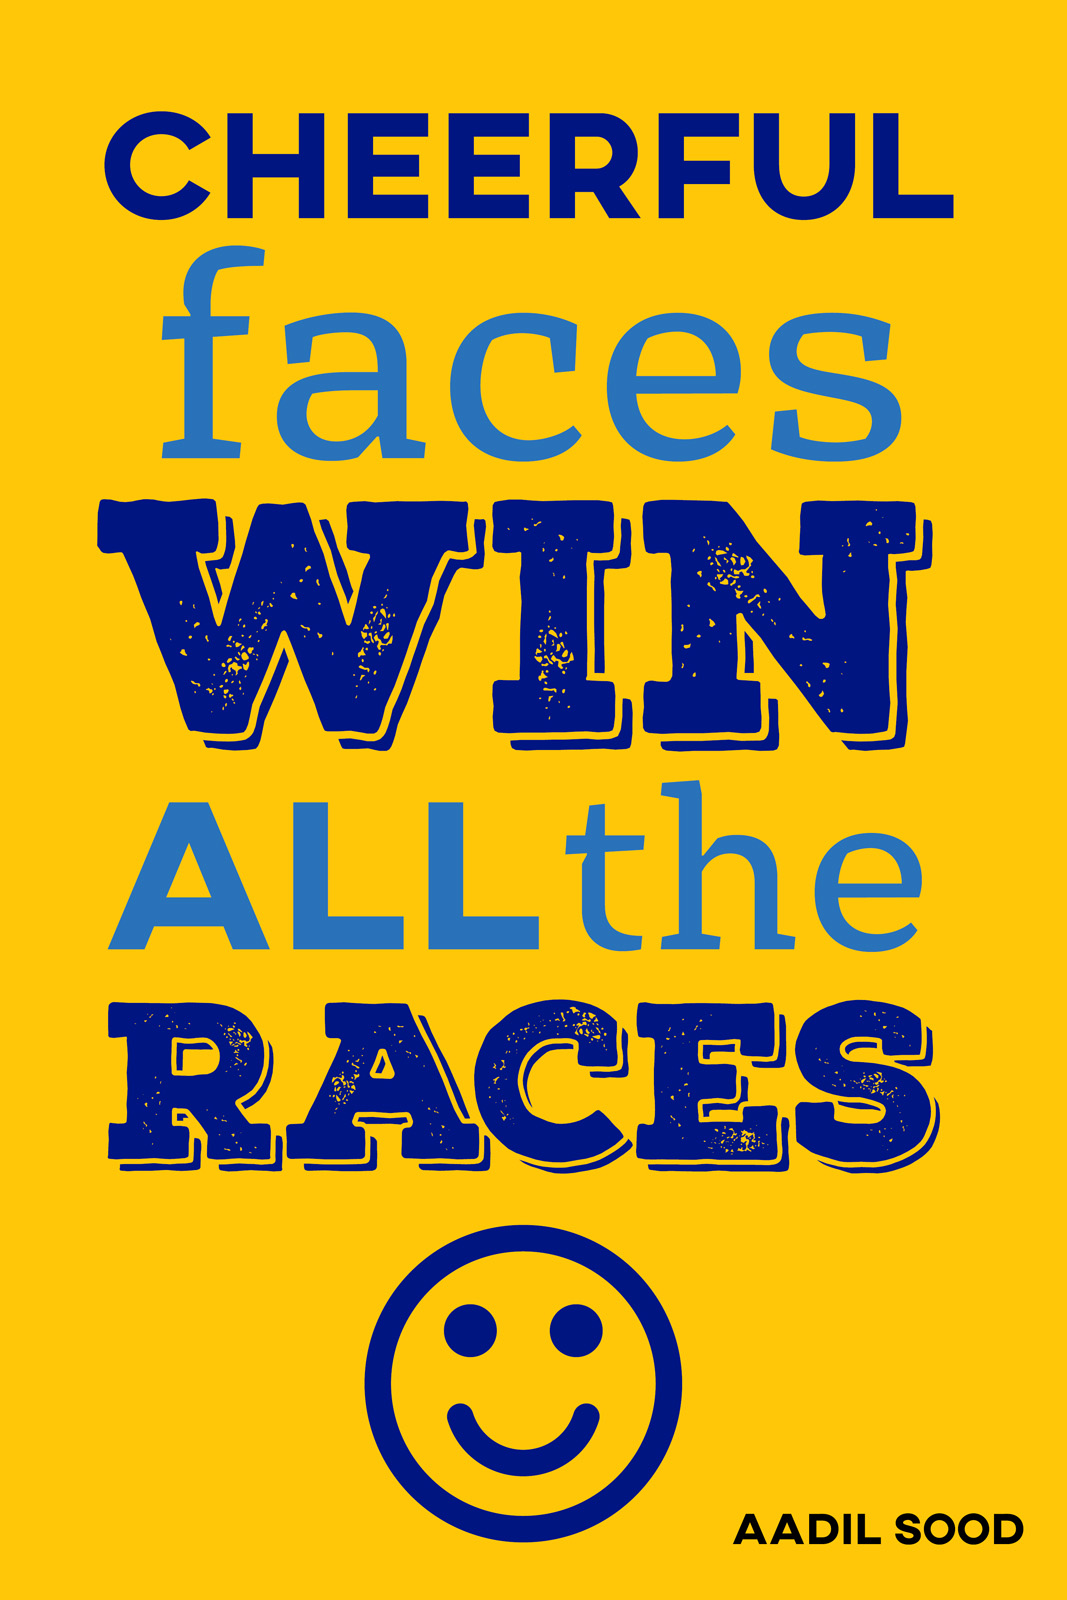 Cheerful faces win the races